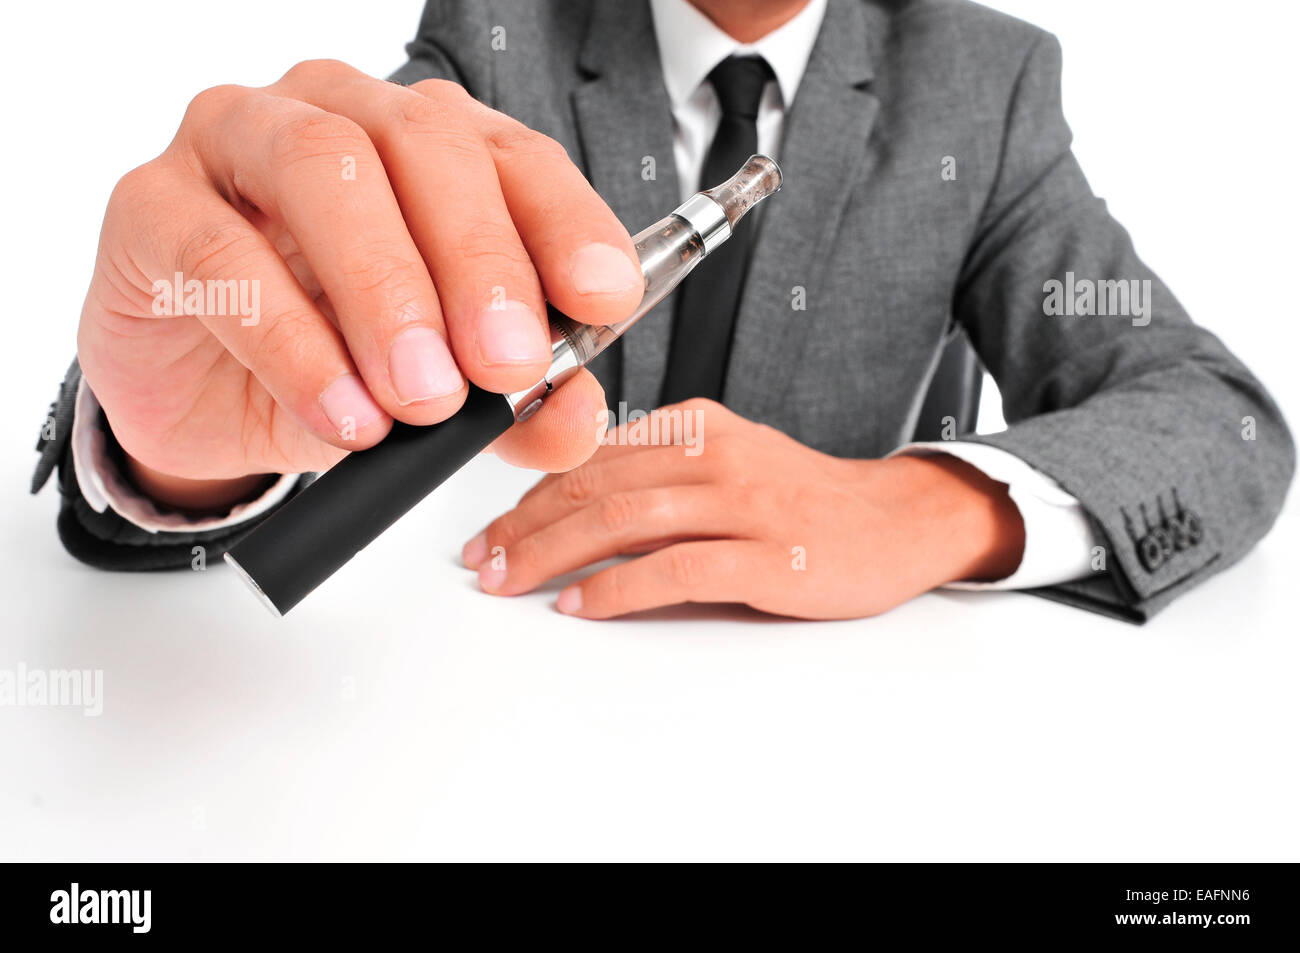 man wearing a suit vaping with an electronic cigarette - Stock Image